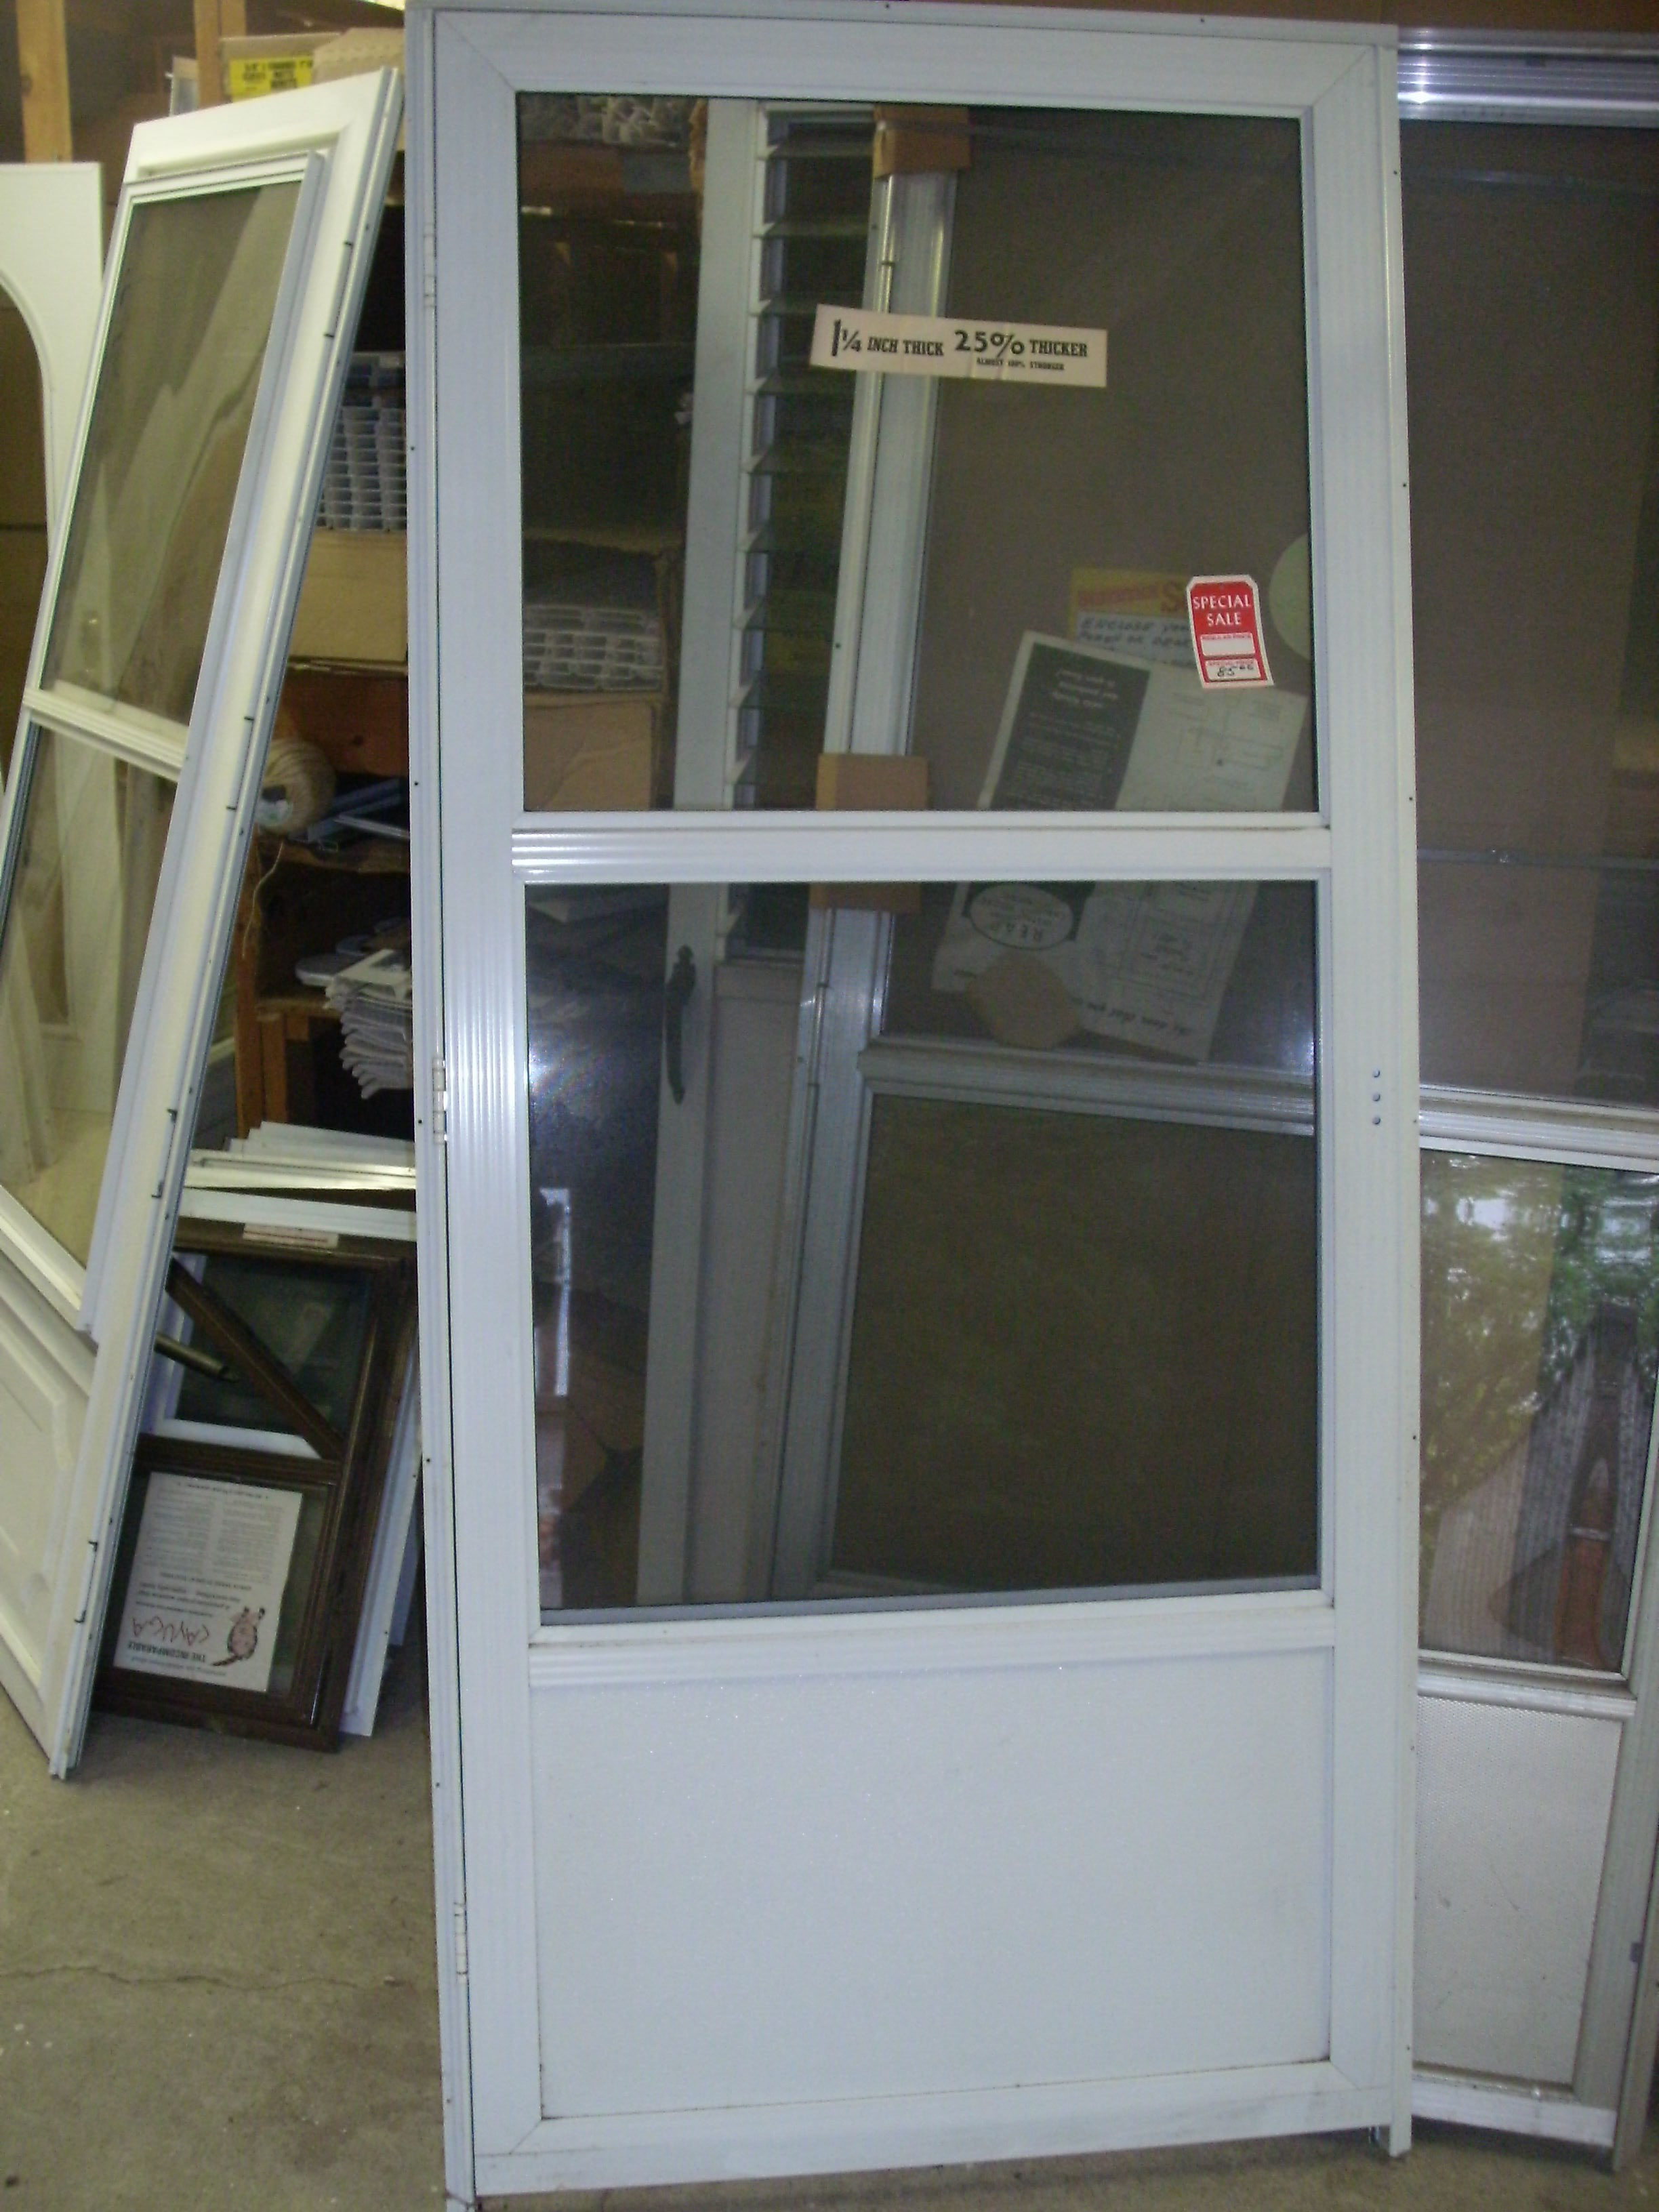 #6A664A Replacement Windows New Doors Gutters Garage Screens u2013 West Armstrong Windows And Doors 6049 & Armstrong Windows And Doors caurora.com Just All About Windows And ... pezcame.com